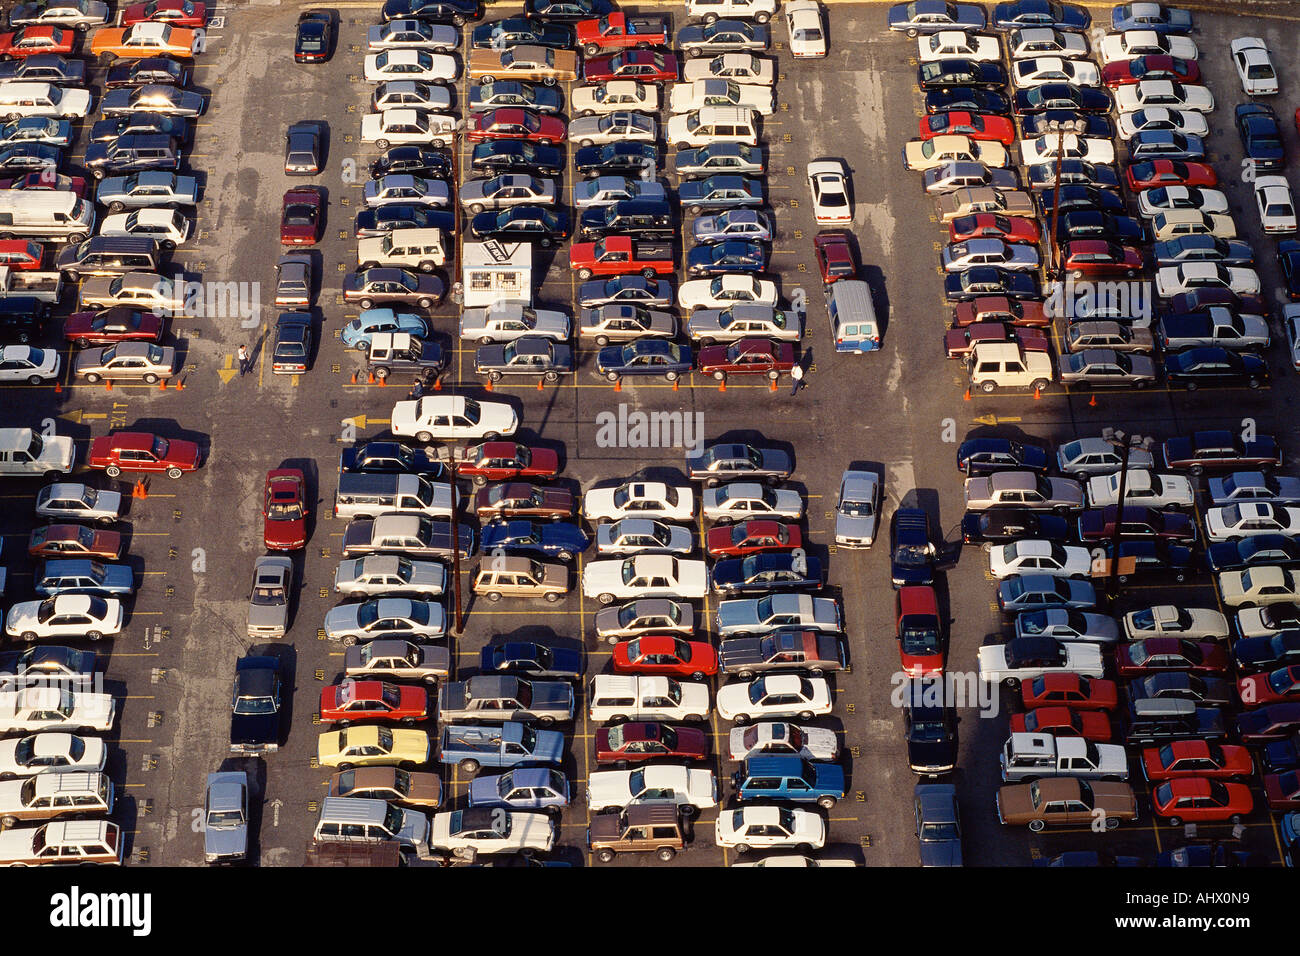 Crowded parking loot - Stock Image